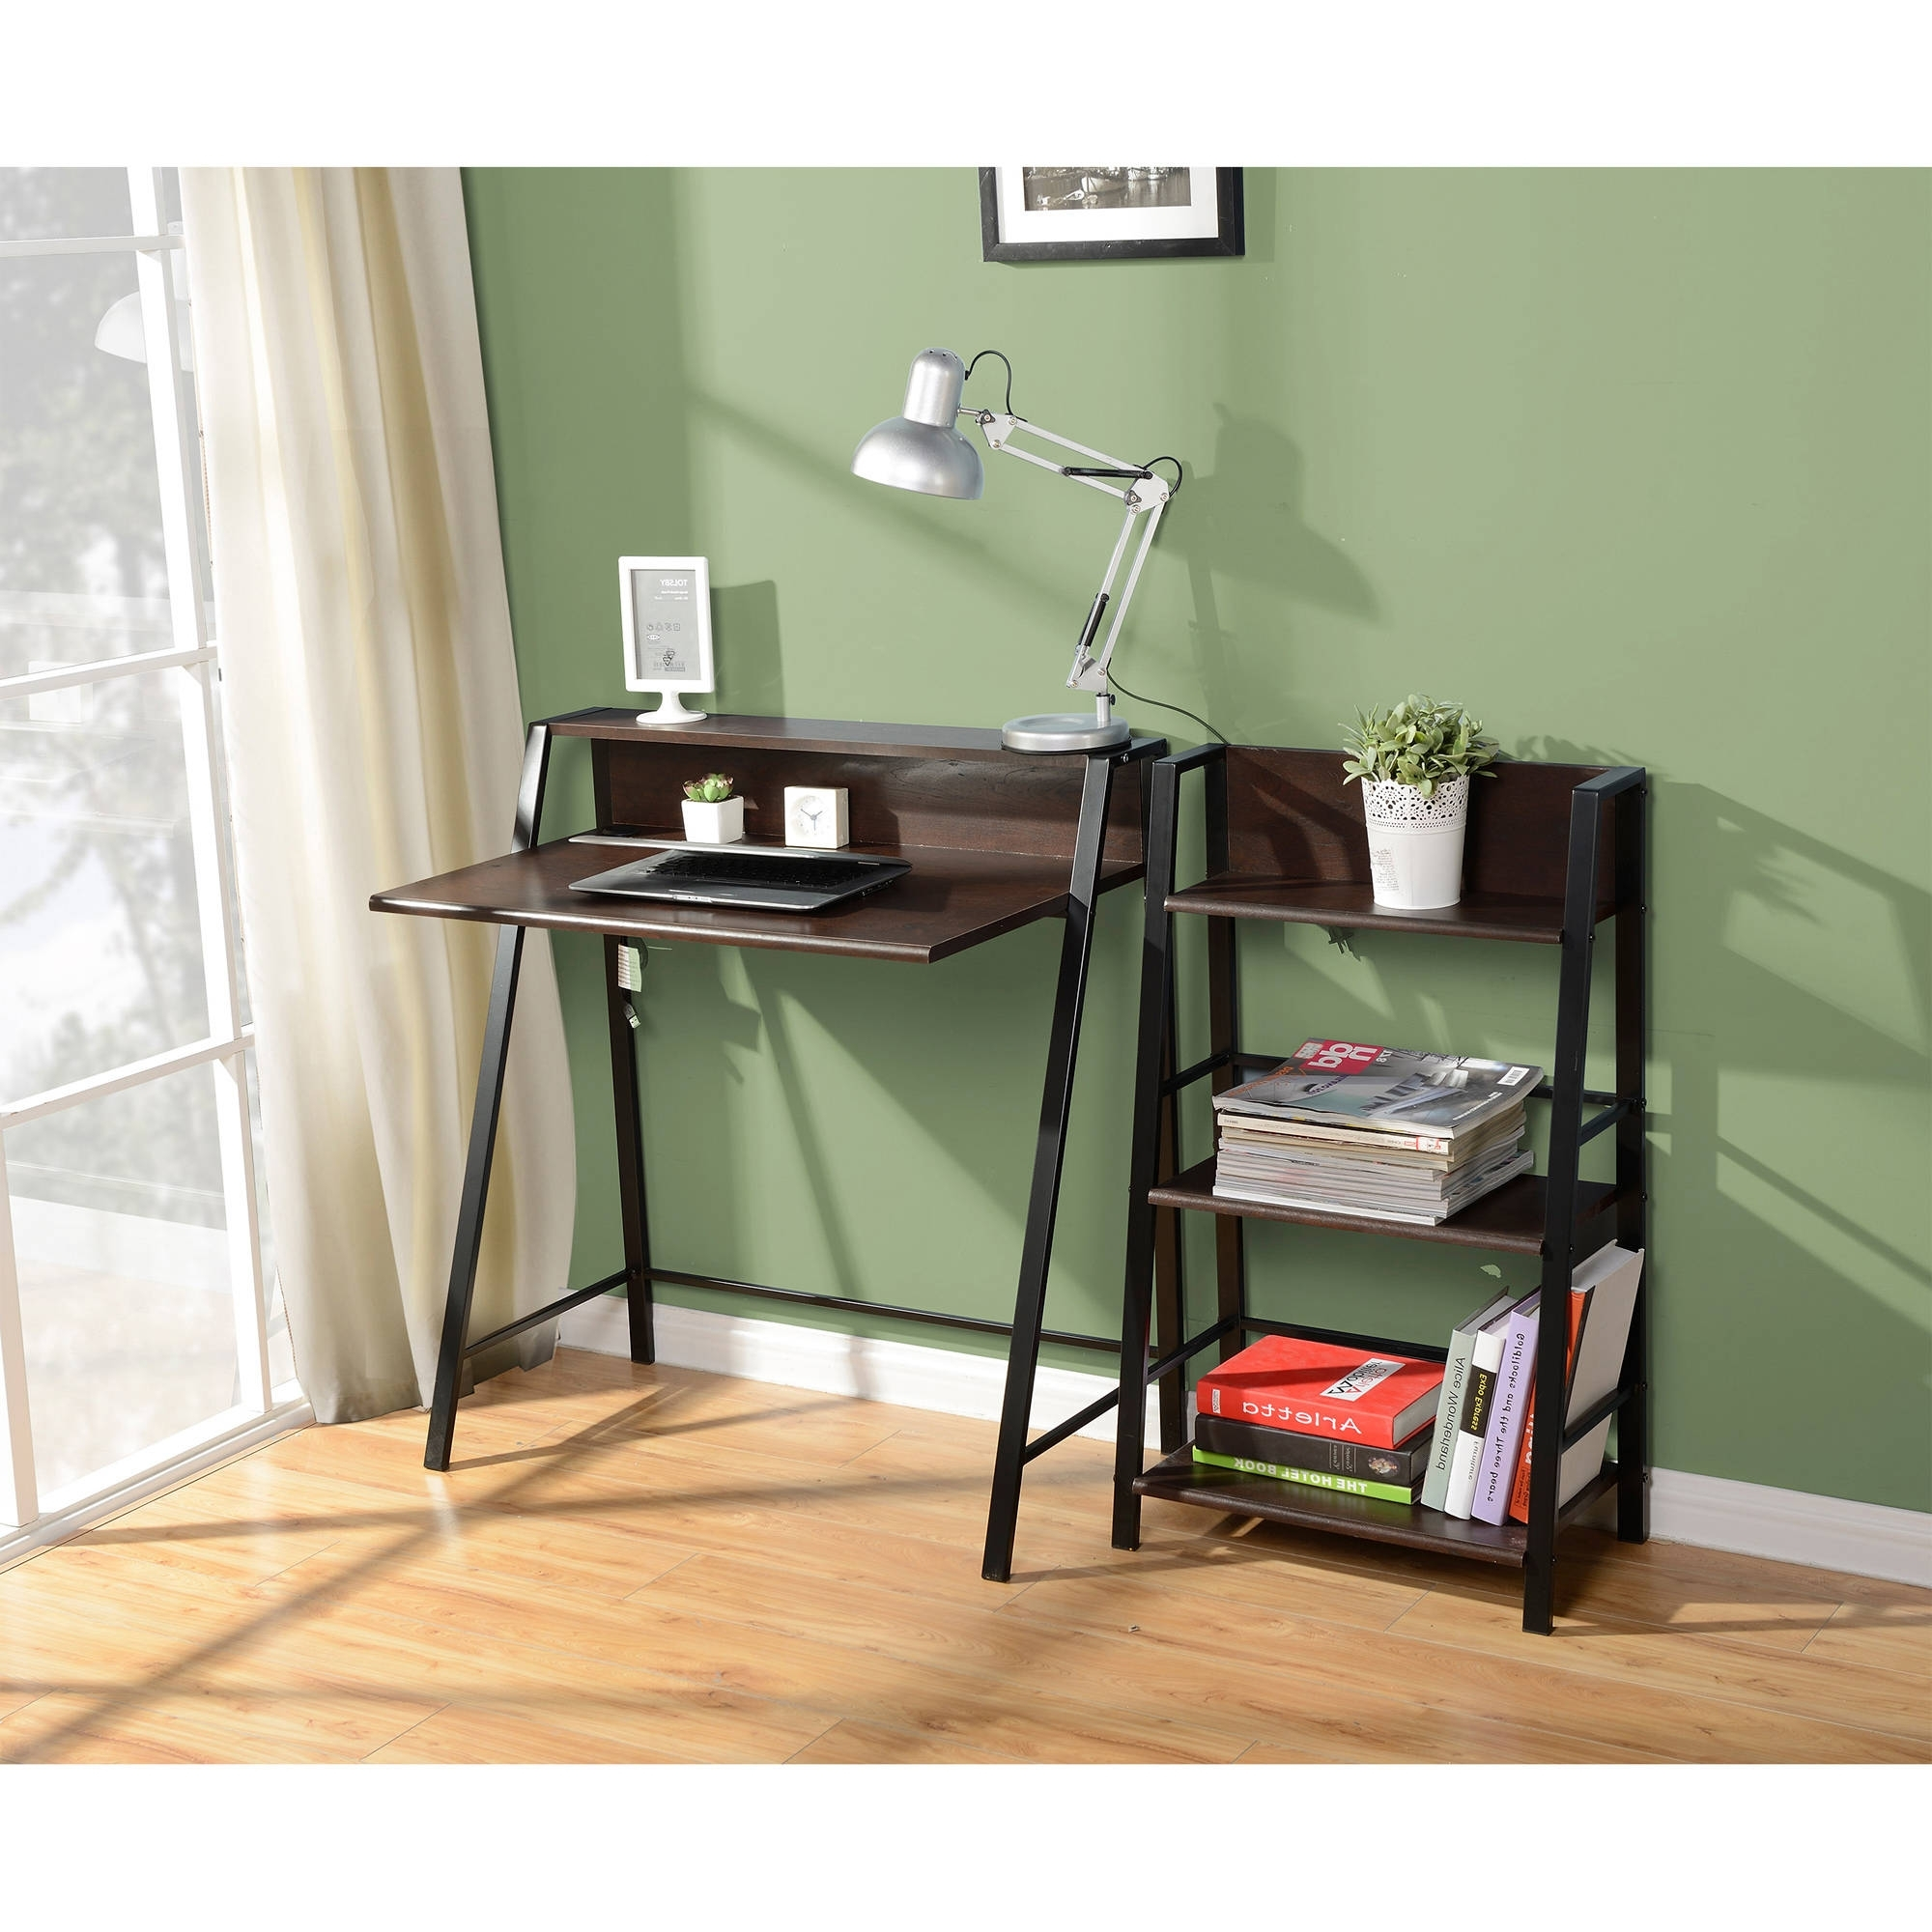 Walmart 3 Shelf Bookcases Pertaining To 2018 Mainstays 2 Tier Writing Desk & 3 Shelf Bookcase, Multiple (View 14 of 15)